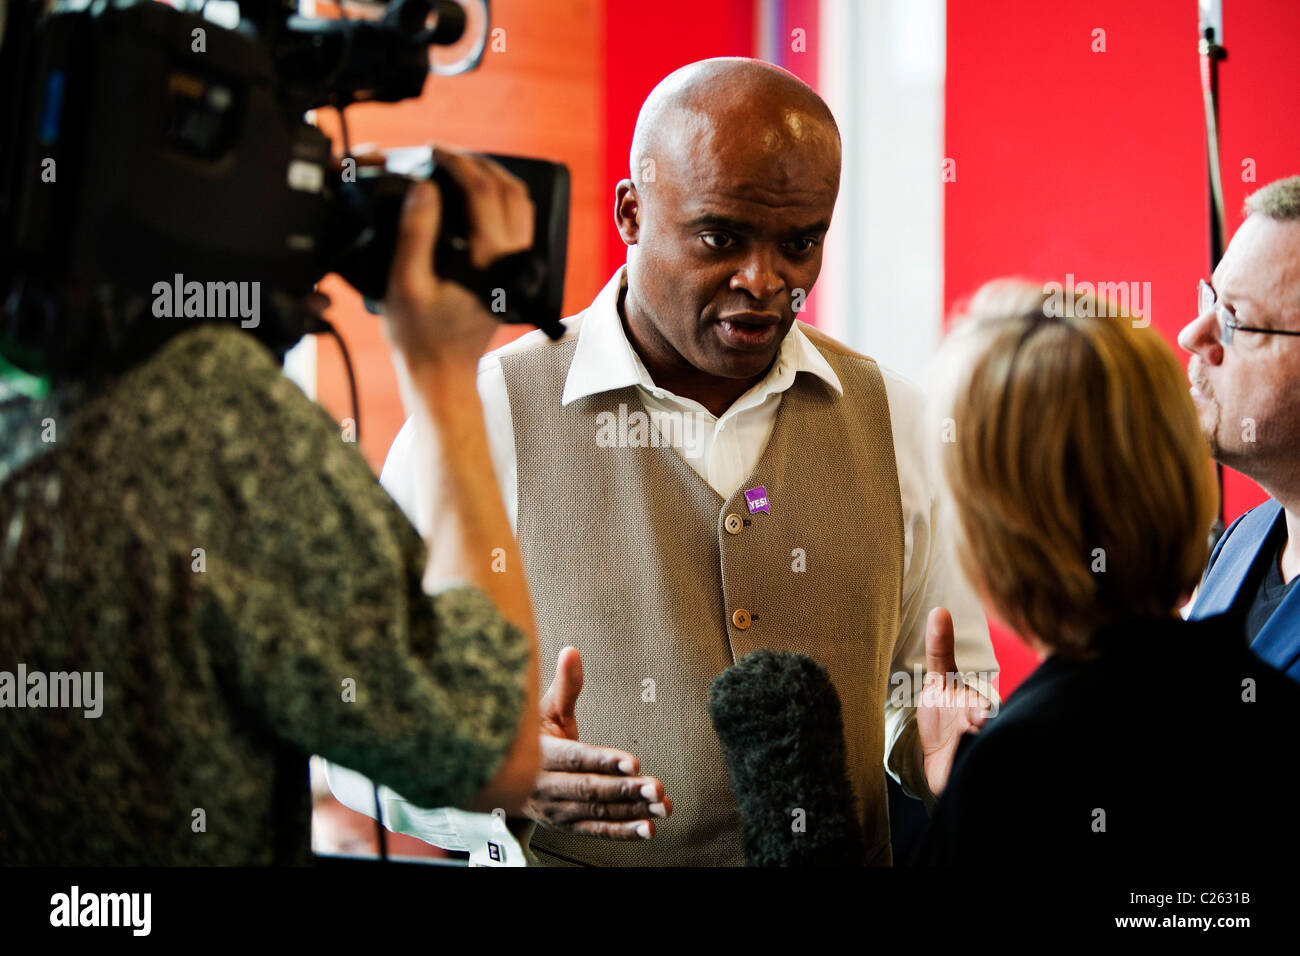 Ex-Olympic athlete Kriss Akabusi, gives an interview during the launch of the YES! to Fairer Votes campaign launched - Stock Image